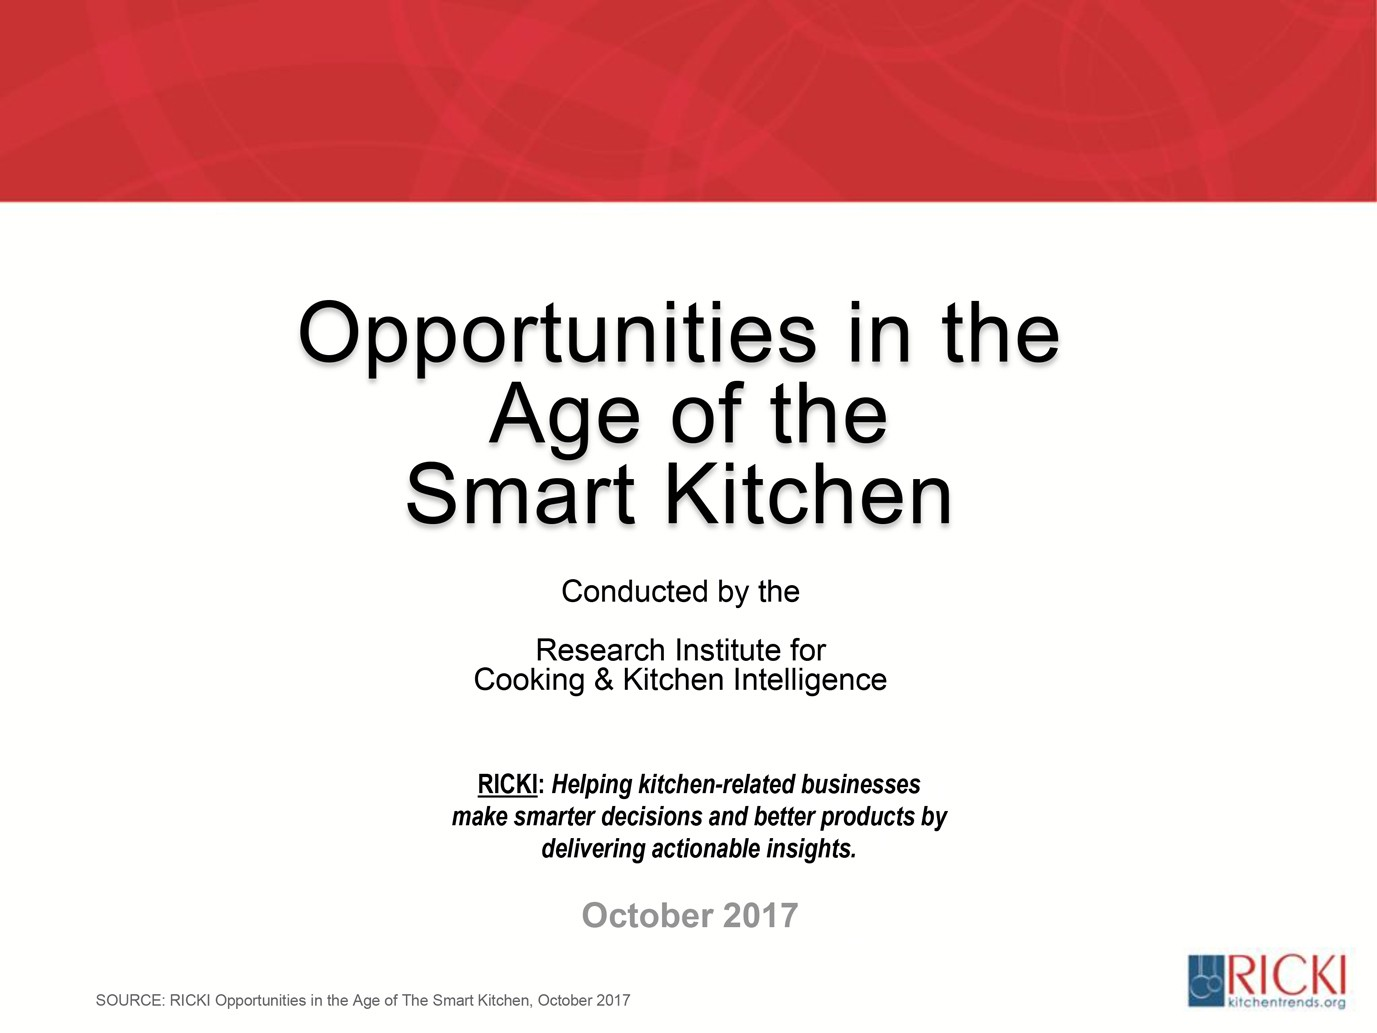 2017 Opportunities in the Age of the Smart Kitchen